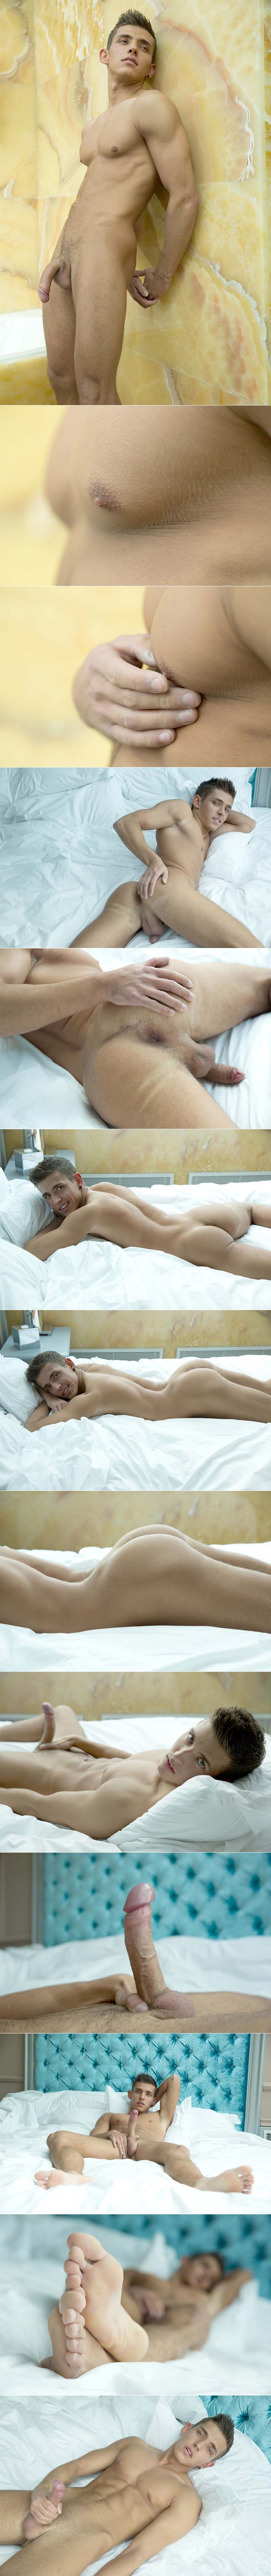 Mario Texeira (Model of the Week) at BelAmiOnline.com